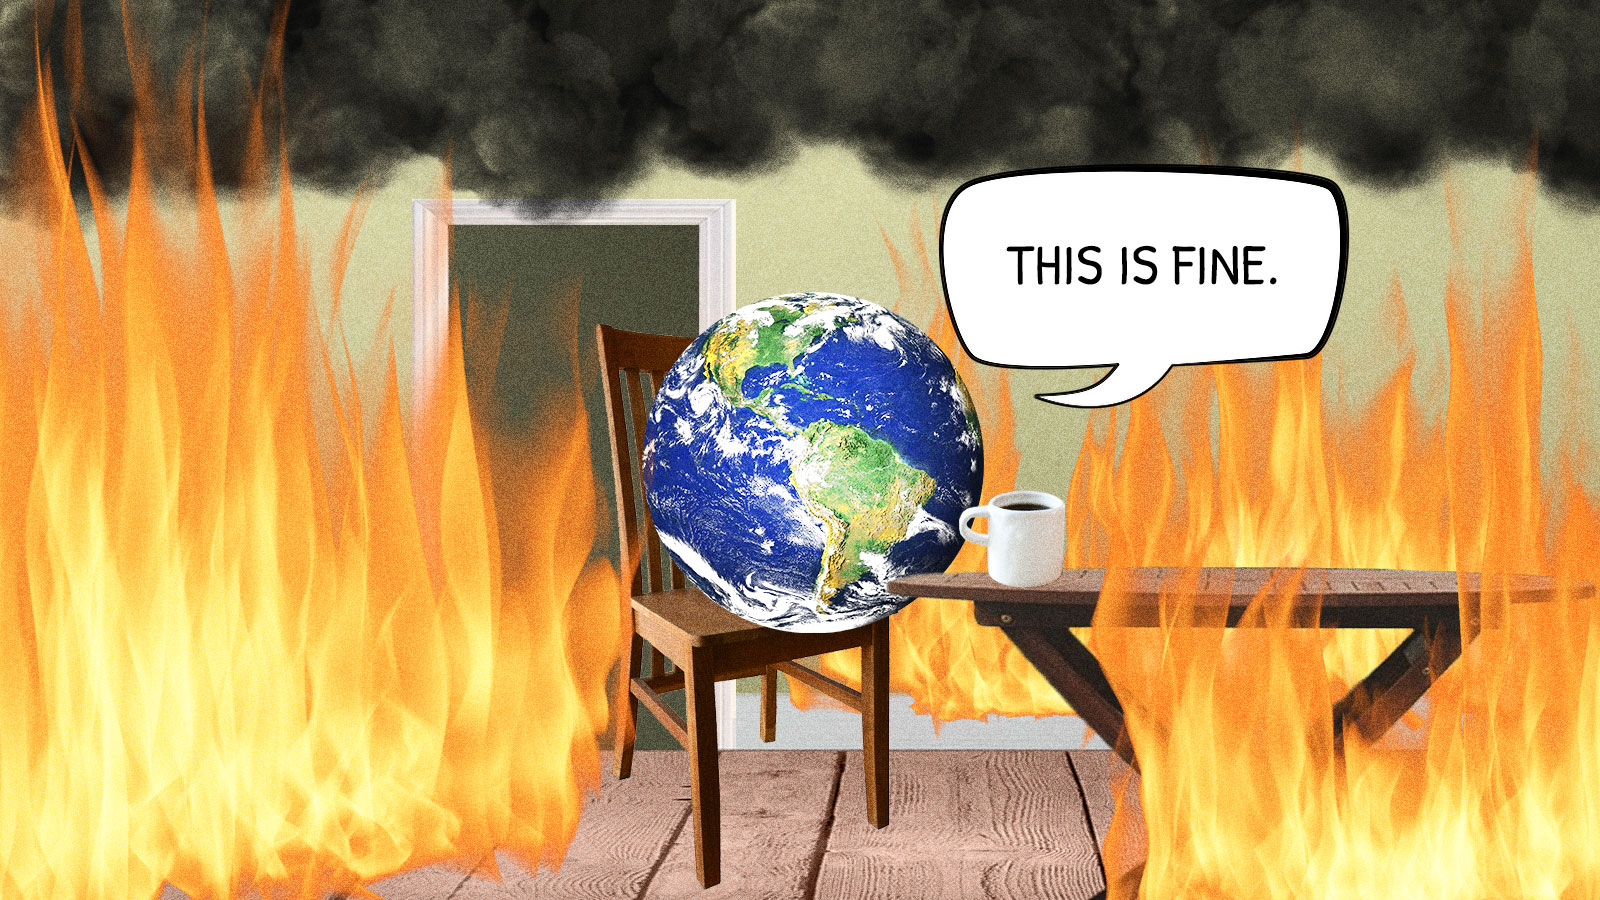 Photoshopped collage of the earth sitting in a room filled with smoke and fire saying